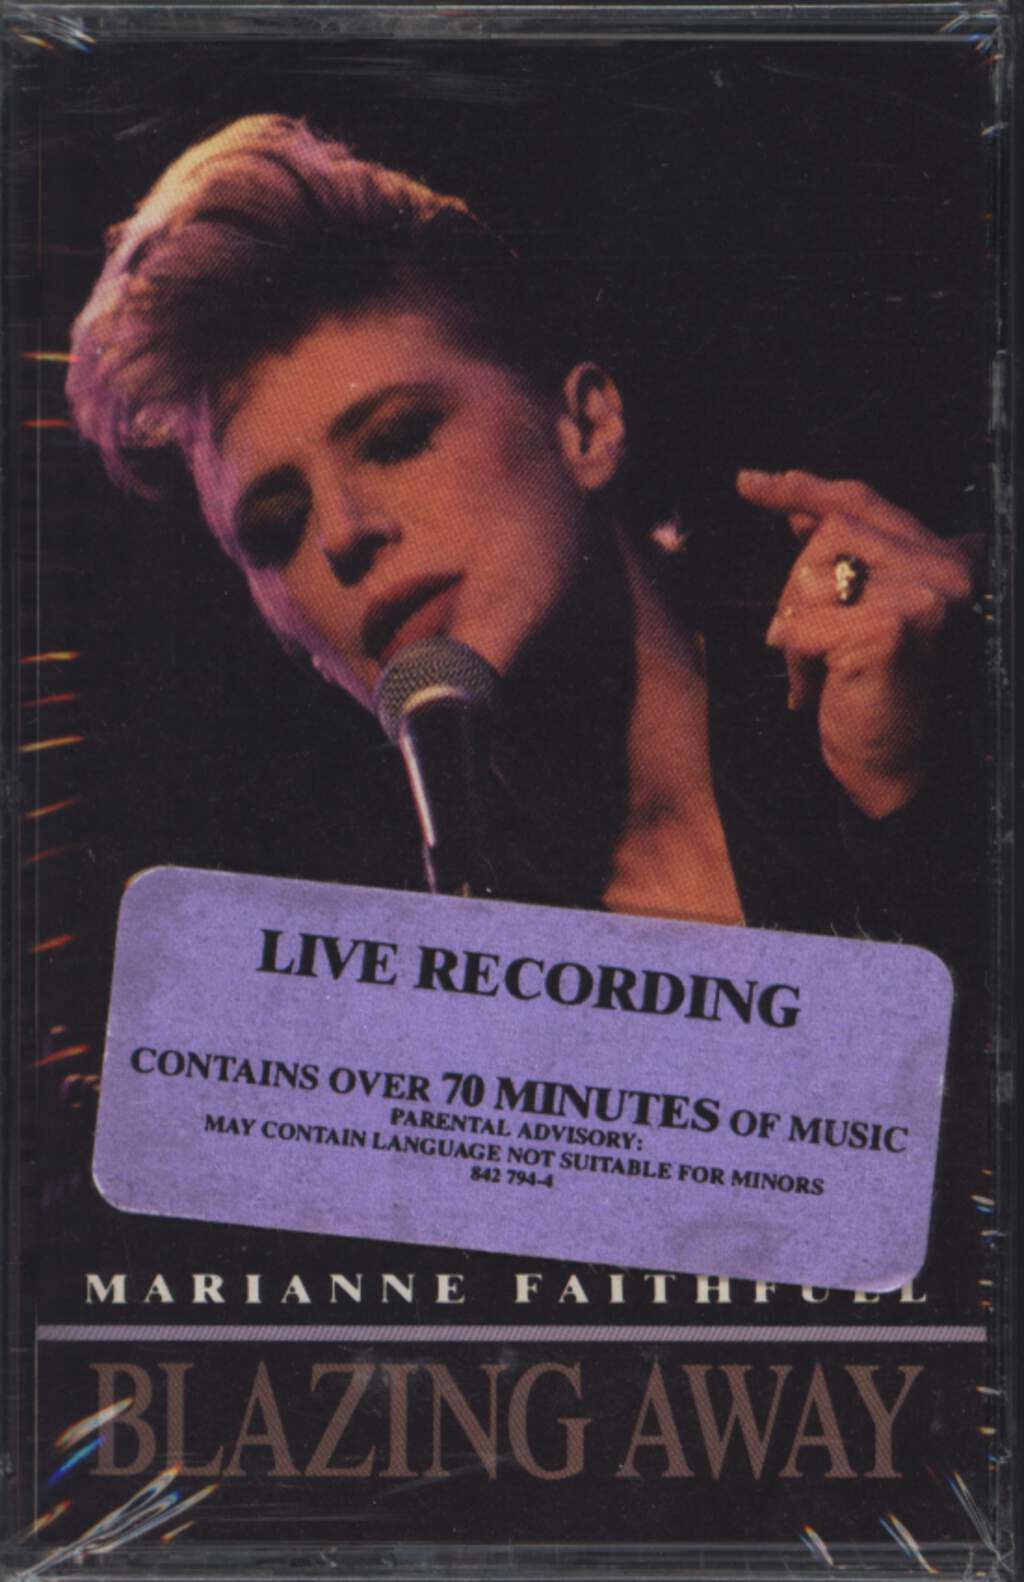 Marianne Faithfull: Blazing Away, Compact Cassette